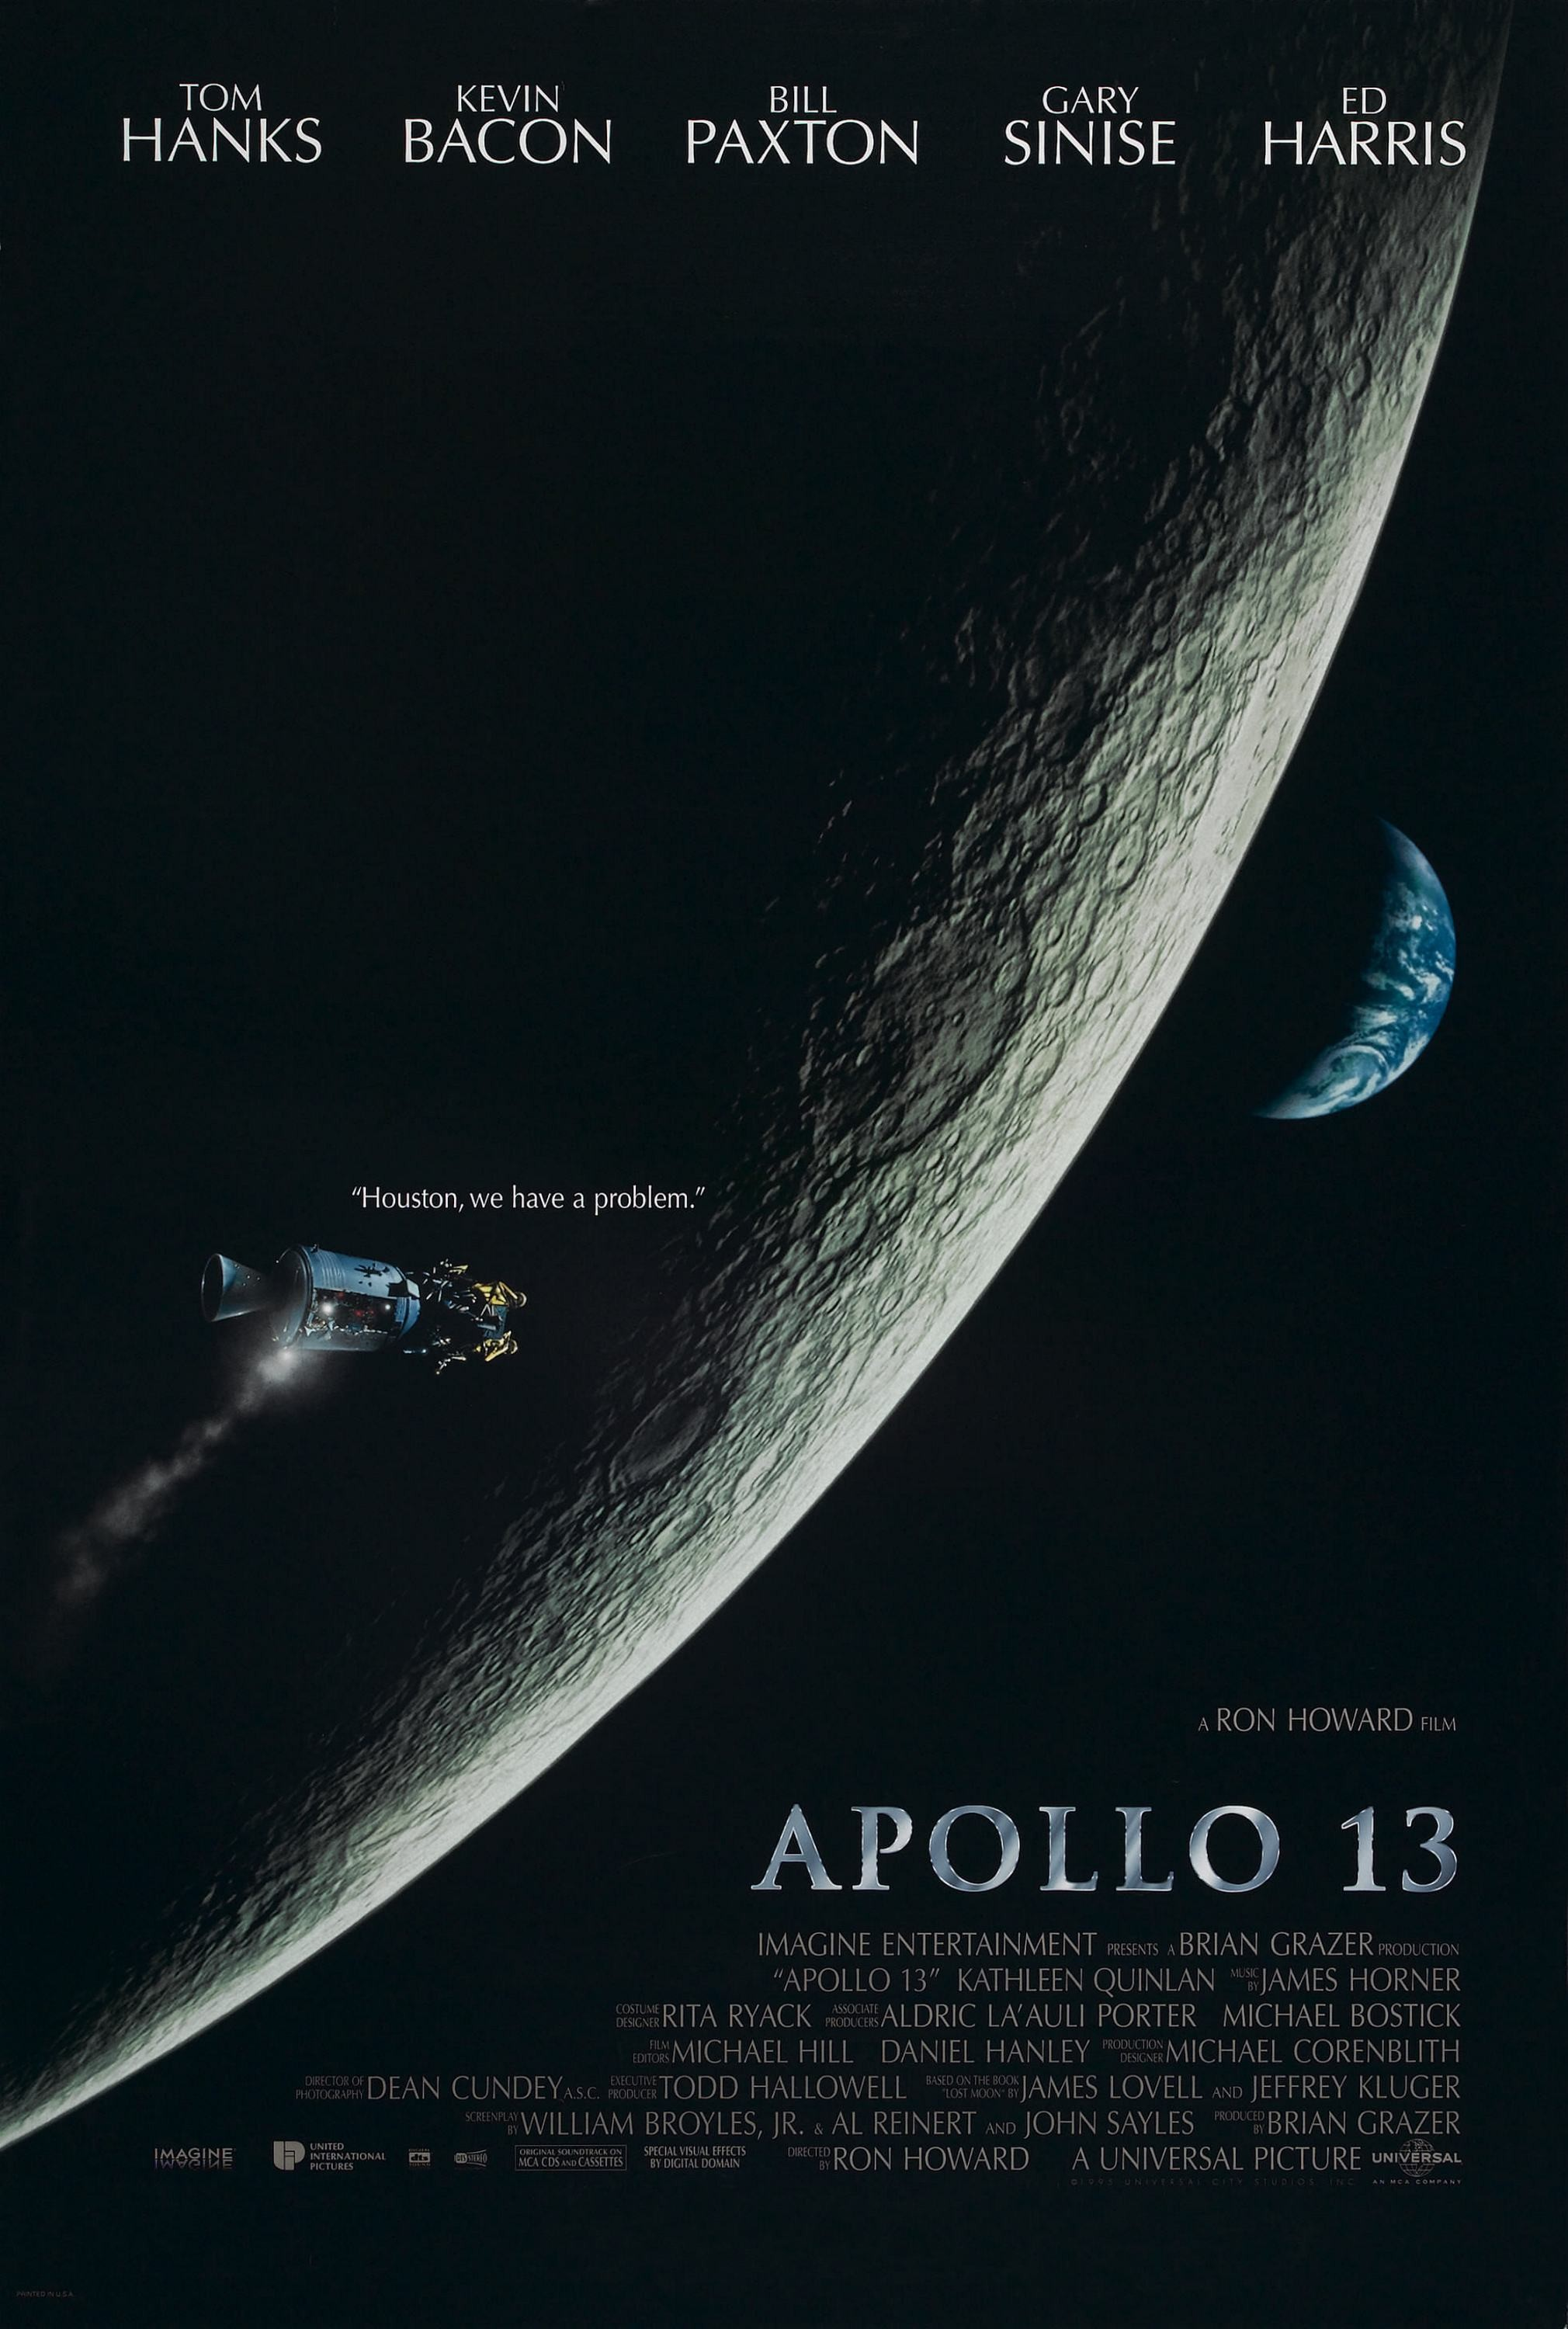 20 Things You Never Knew About 'Apollo 13'